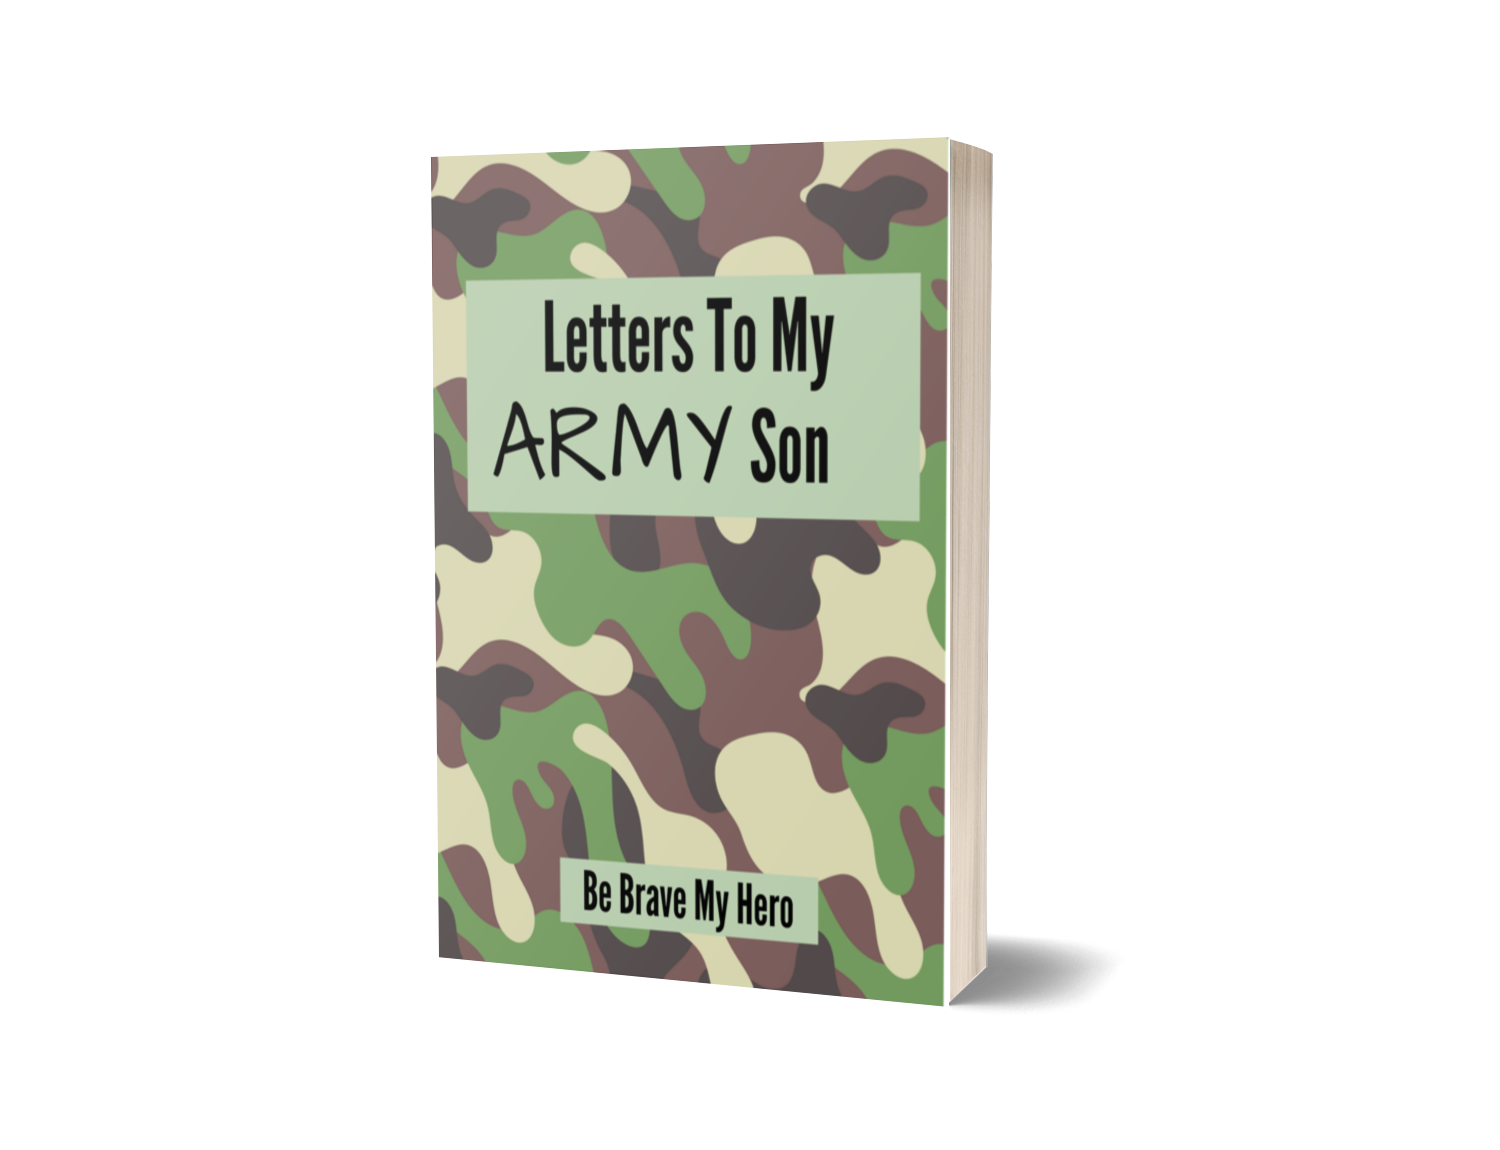 Letters To My Army Son